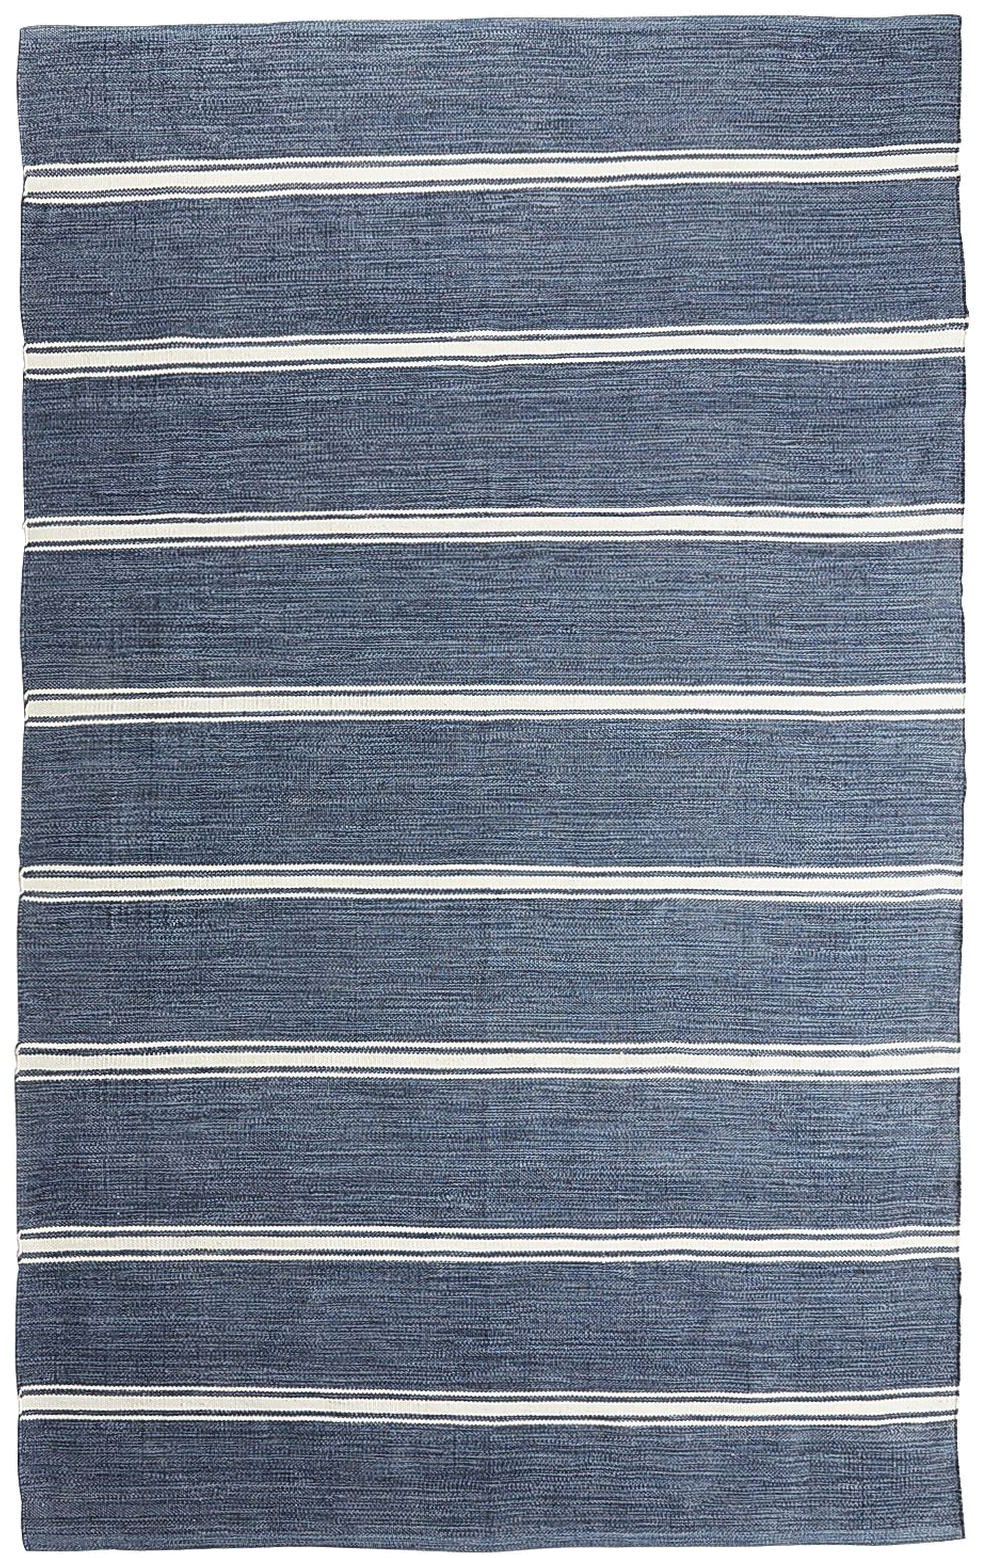 Wide-Striped Navy & Ivory 8x10 Rug - $399.95